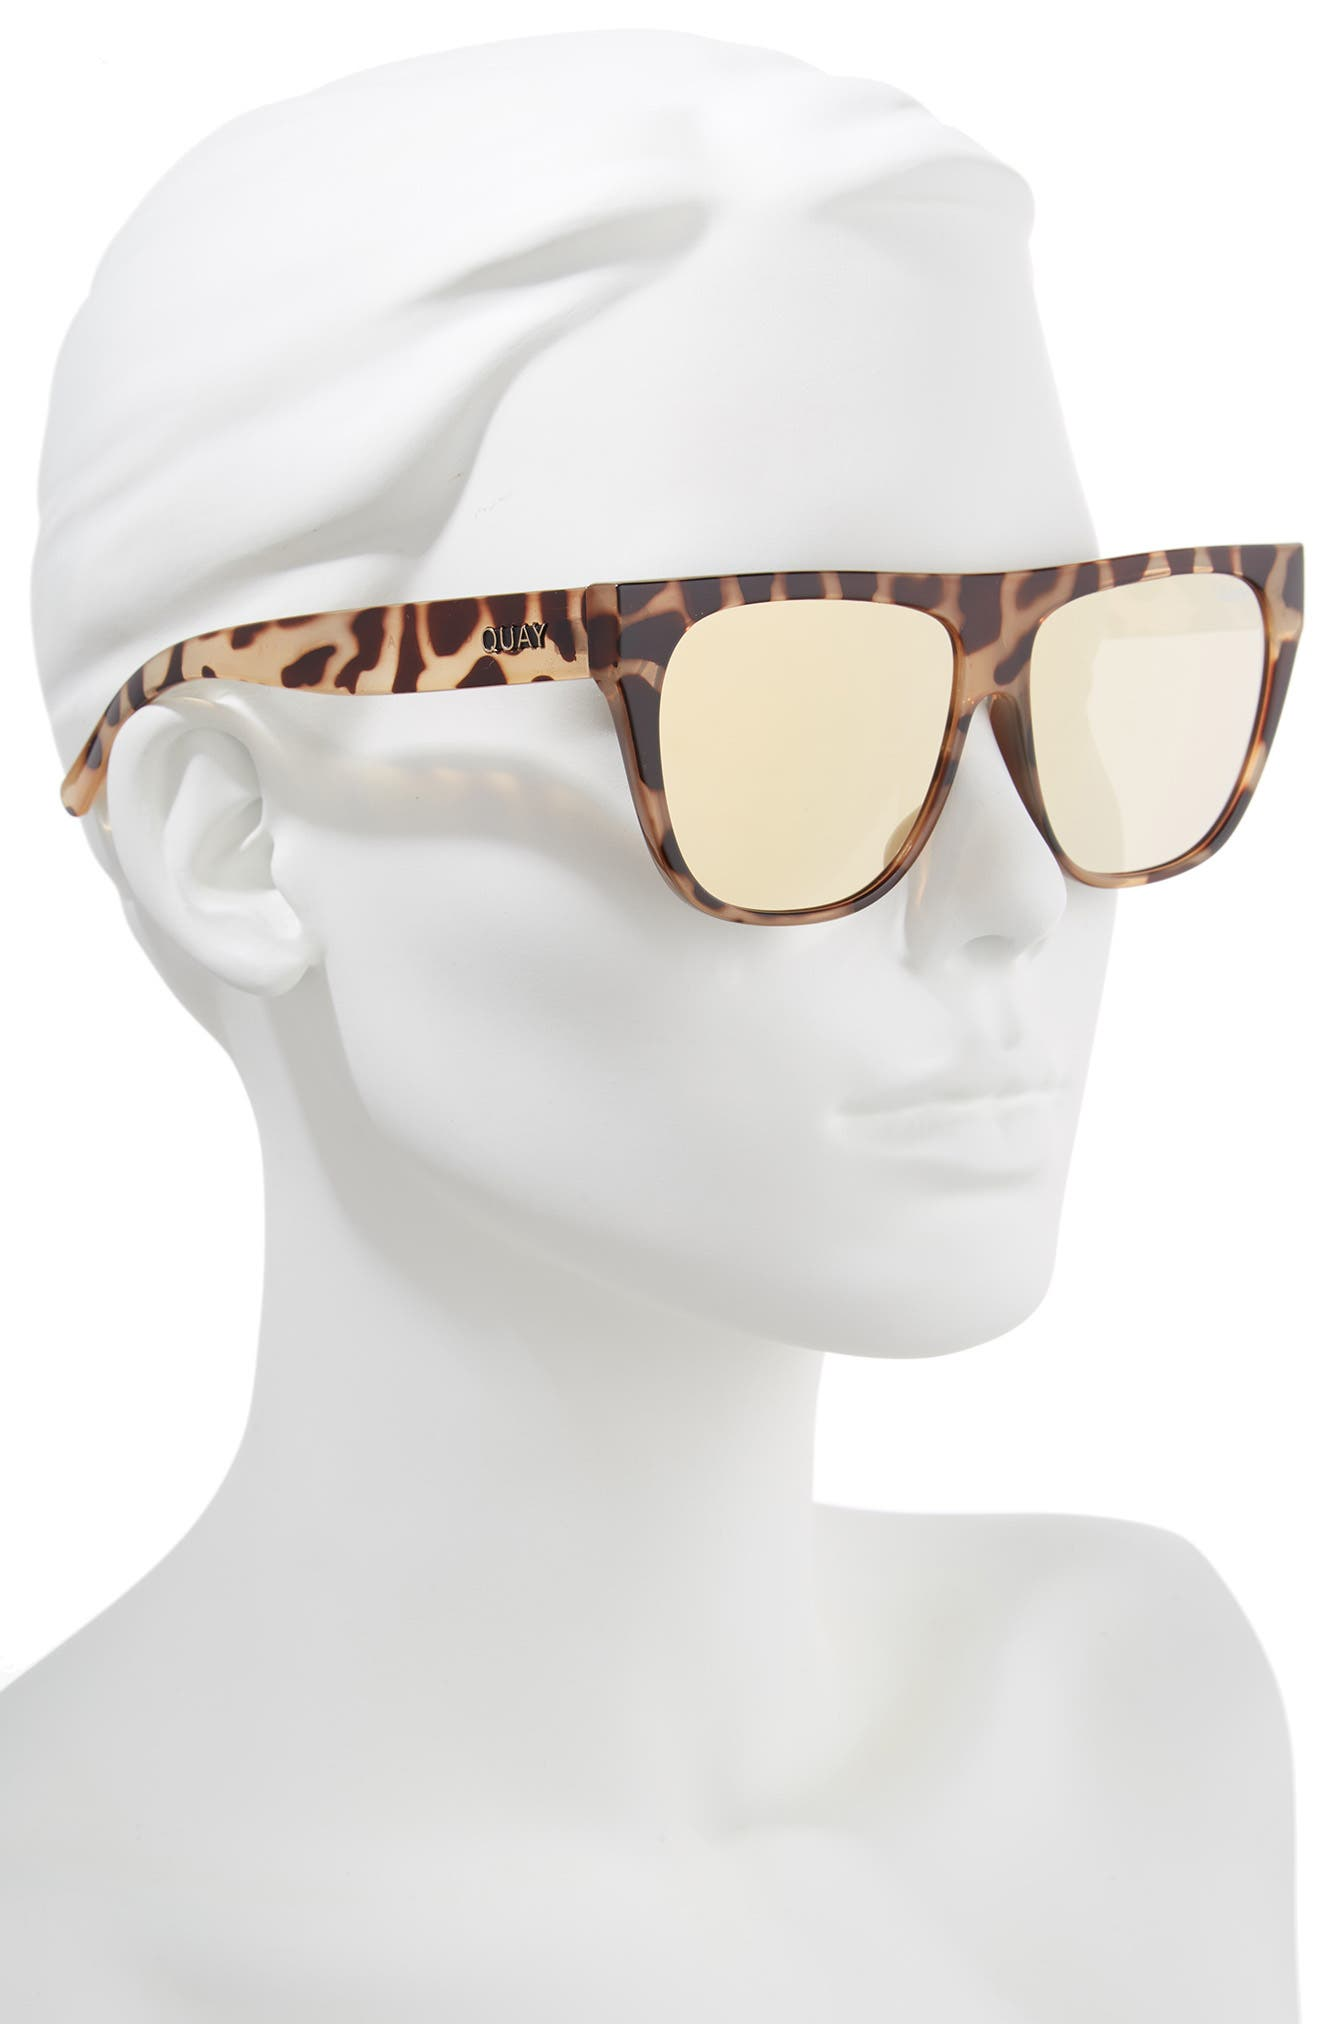 x Tony Bianco Drama by Day 55mm Square Sunglasses,                             Alternate thumbnail 2, color,                             Tort/ Gold